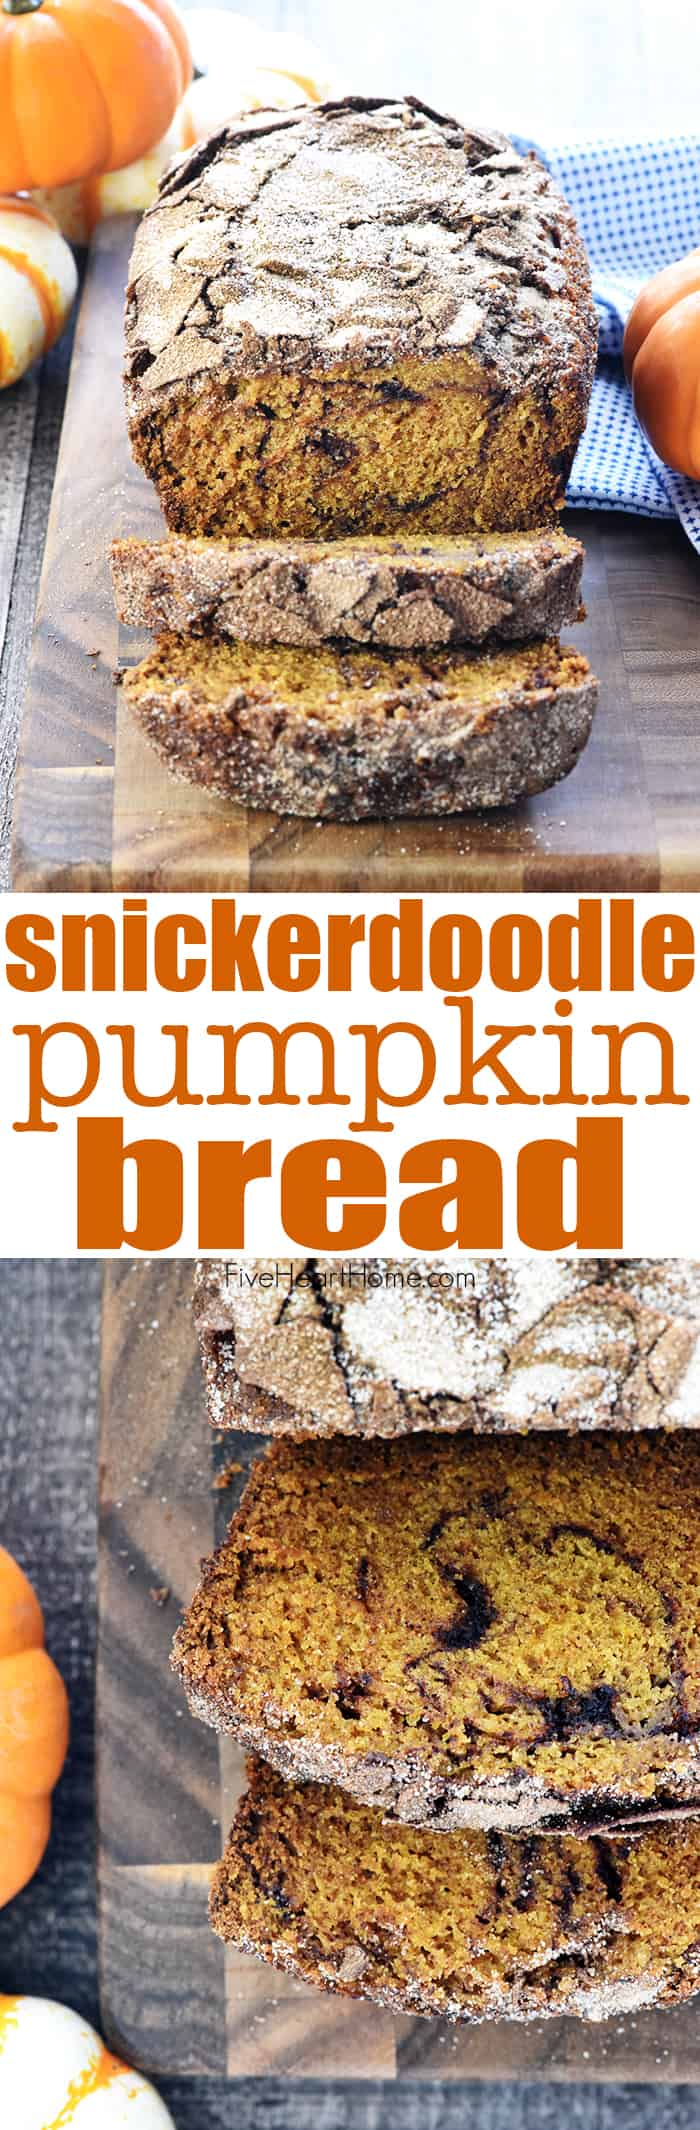 Snickerdoodle Pumpkin Bread ~ a sweet, moist pumpkin bread recipe, swirled and topped with a generous amount of cinnamon sugar for a delicious fall treat! | FiveHeartHome.com